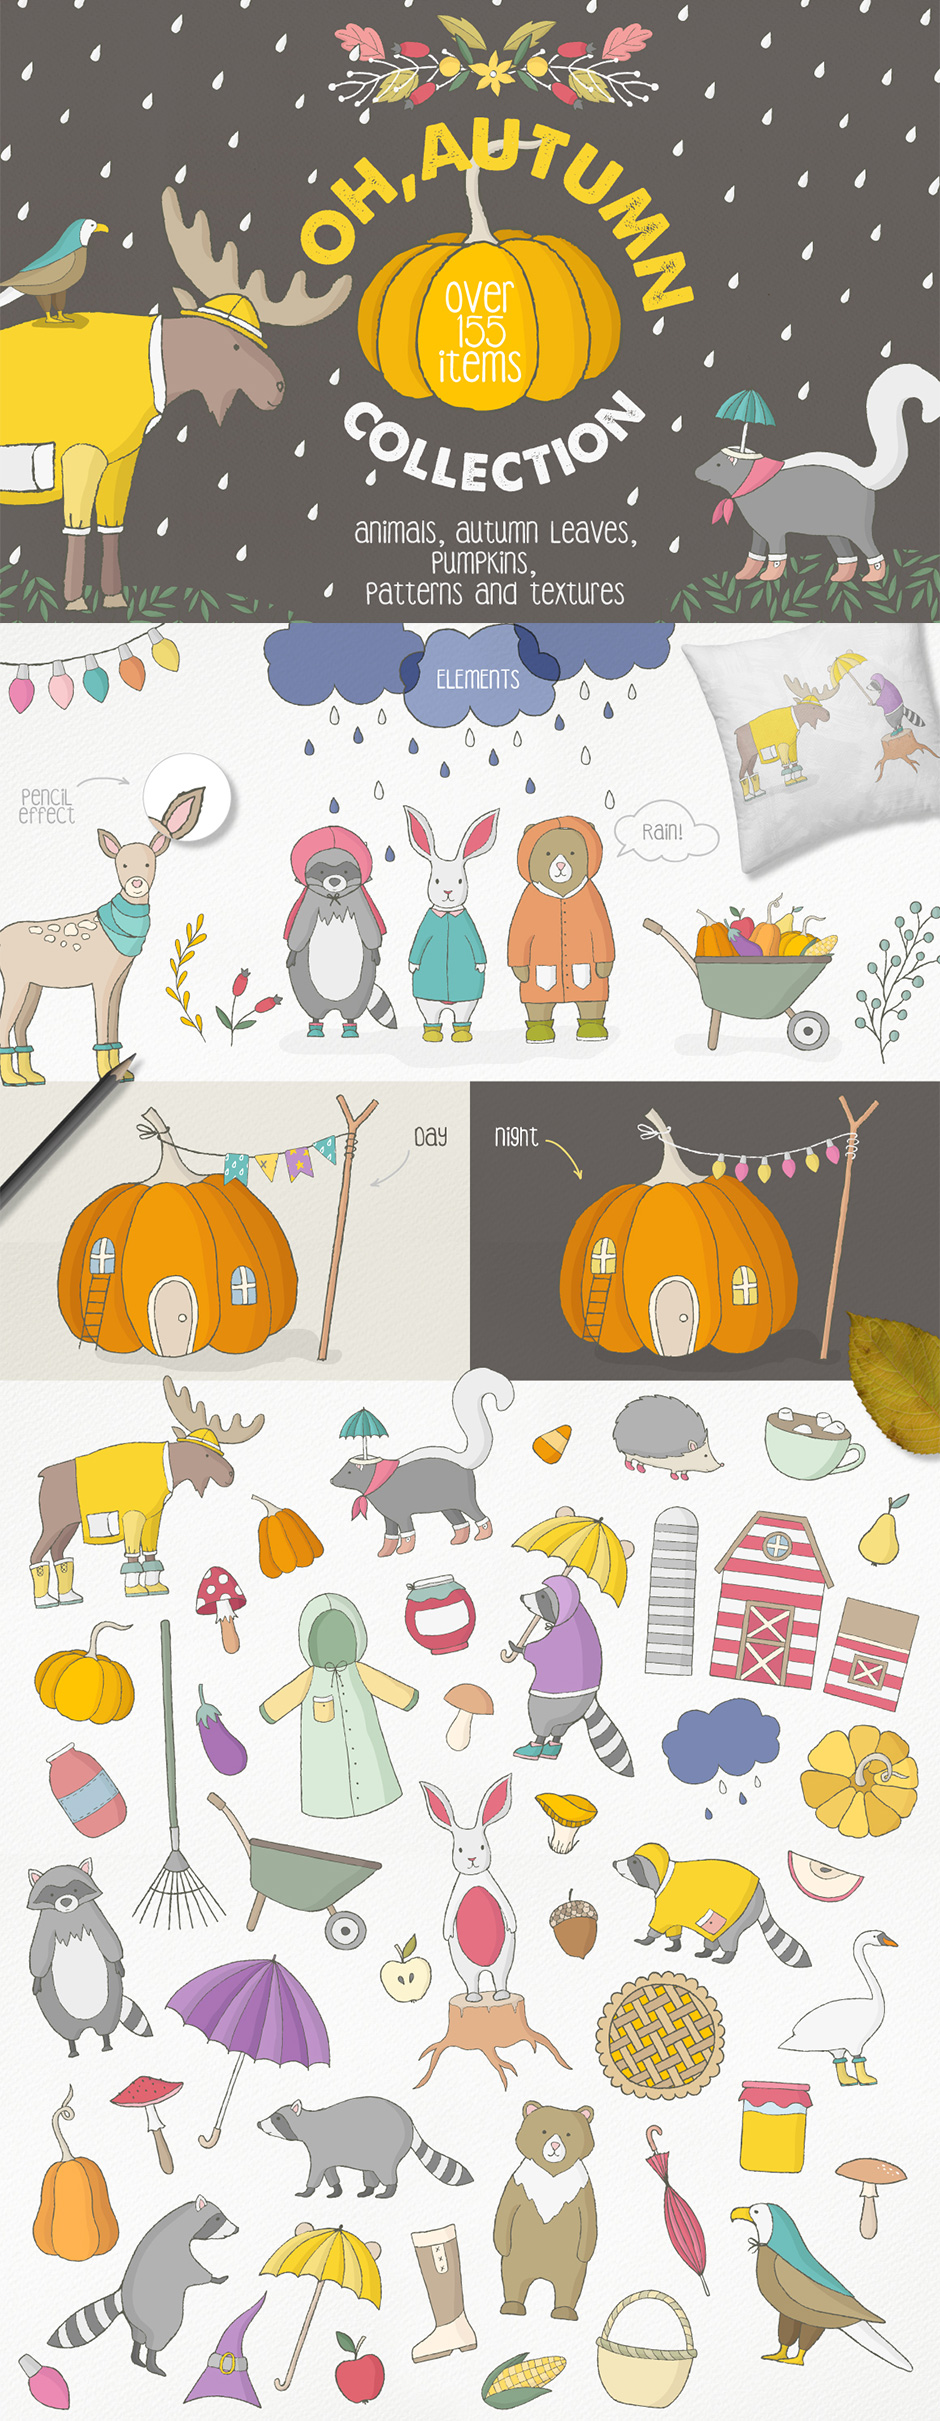 Oh Autumn Collection